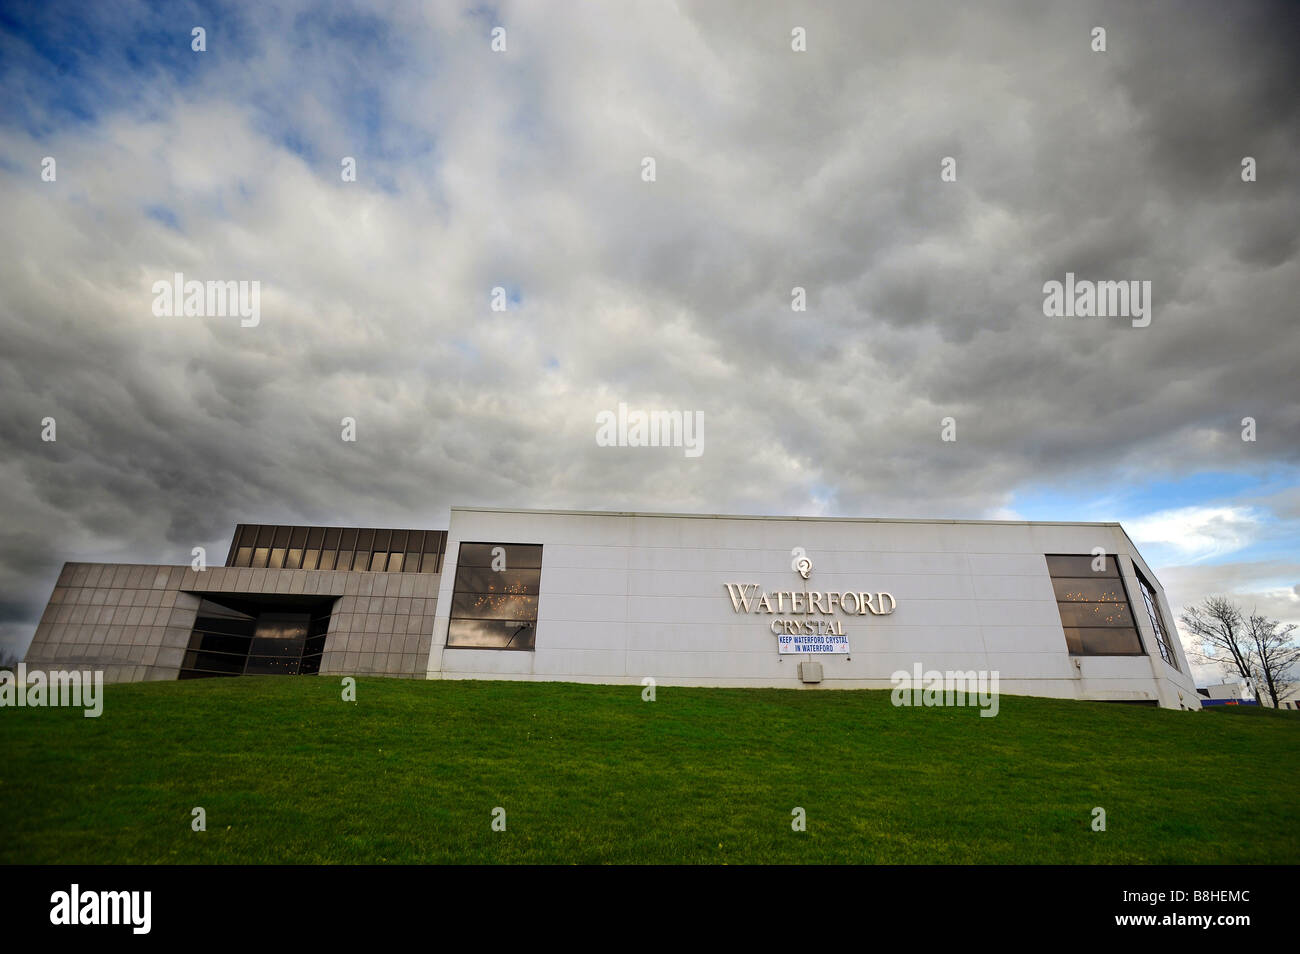 The Waterford crystal factory in Waterford Ireland - Stock Image